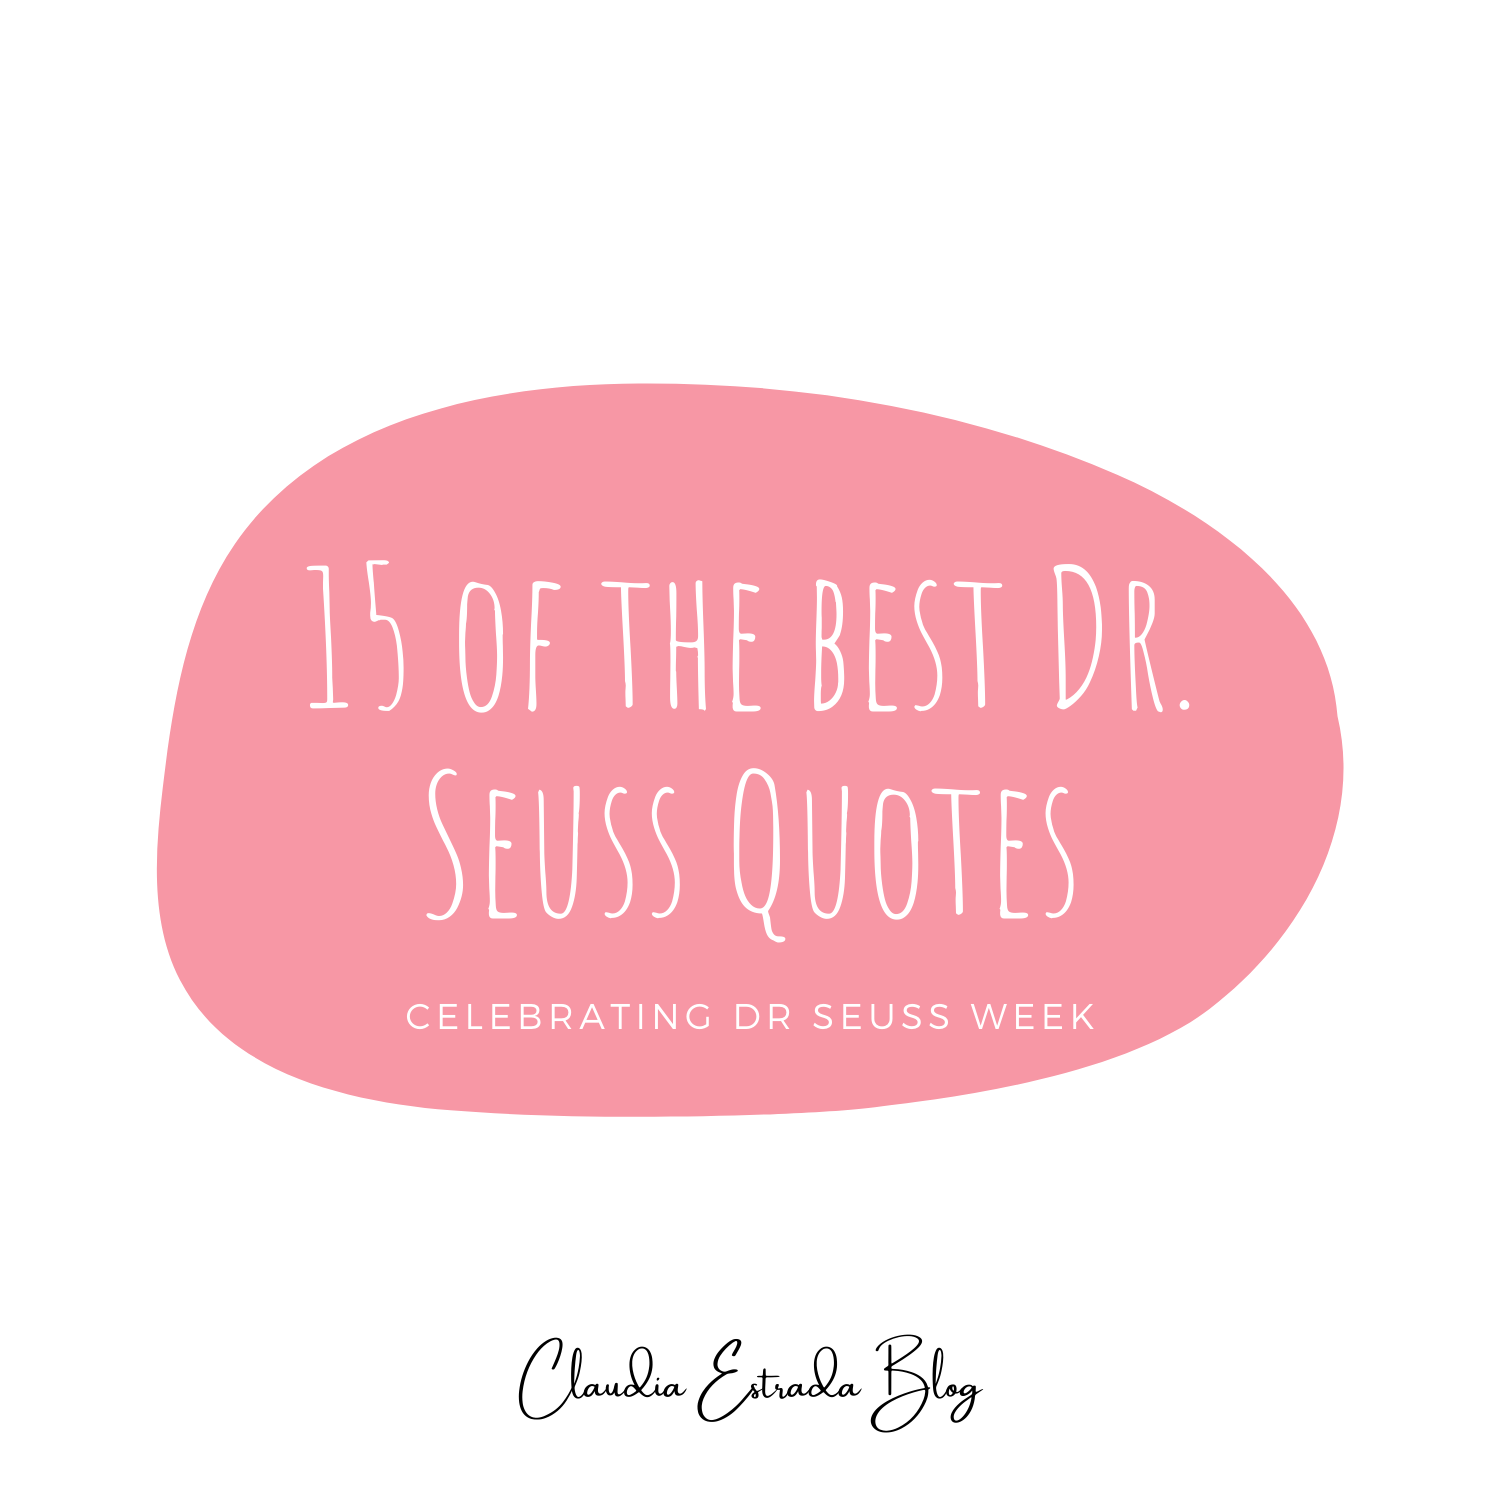 15 of the best Dr Seuss quotes, celebrate dr seuss week